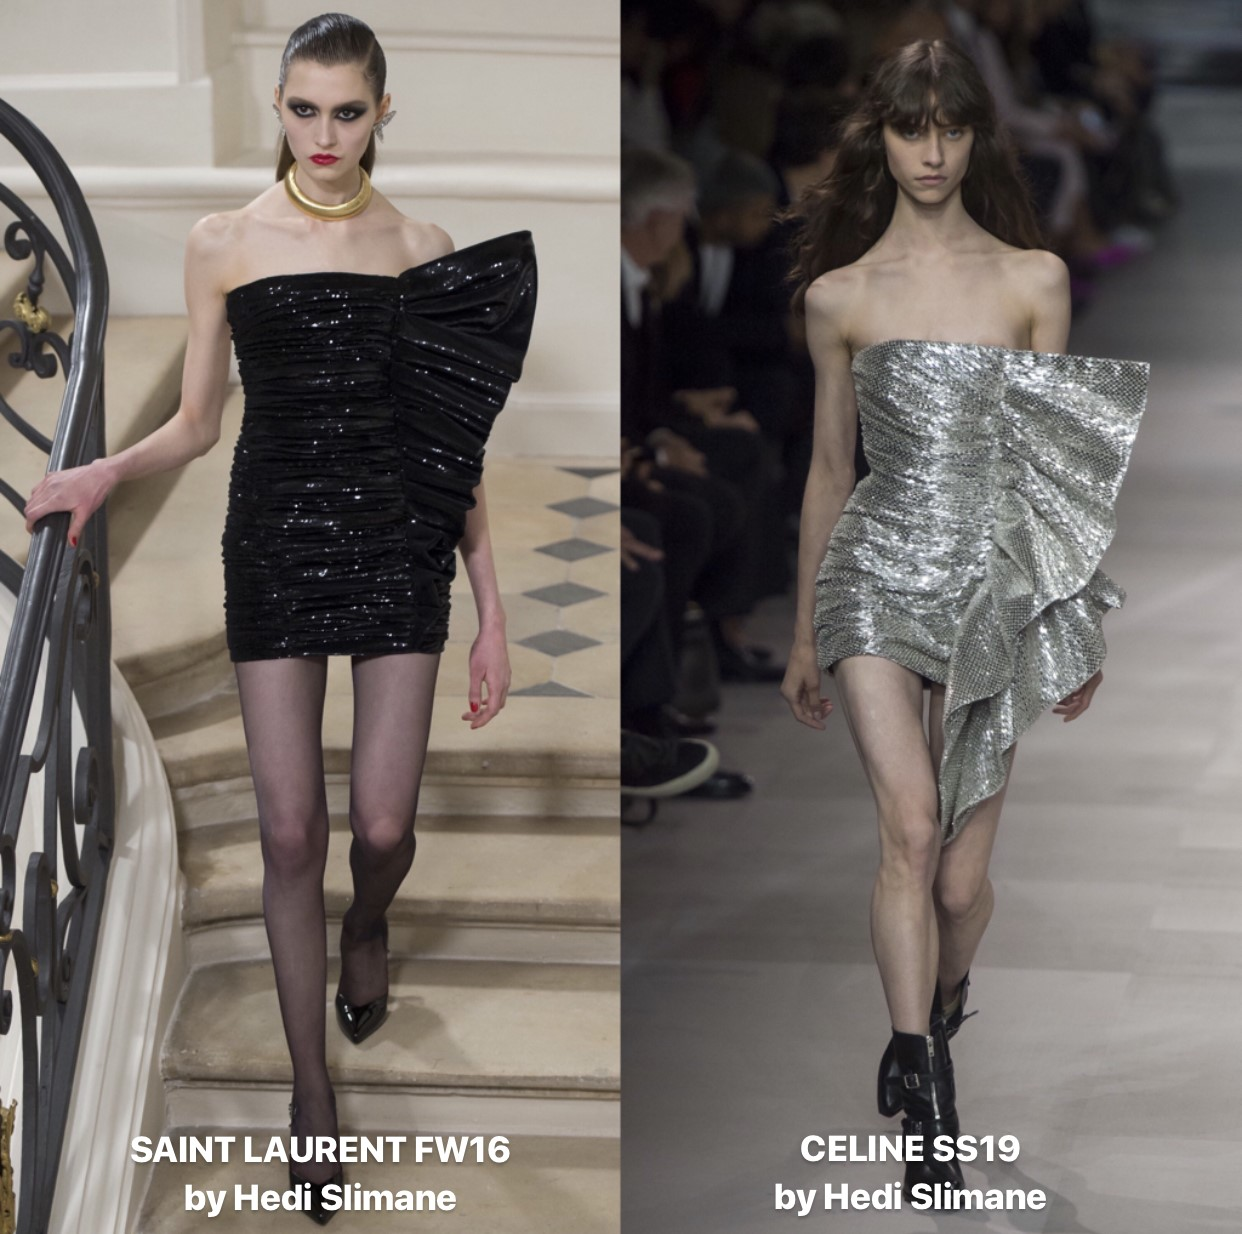 Images taken from the Vogue Runway App, all rights due to the respecutive owners